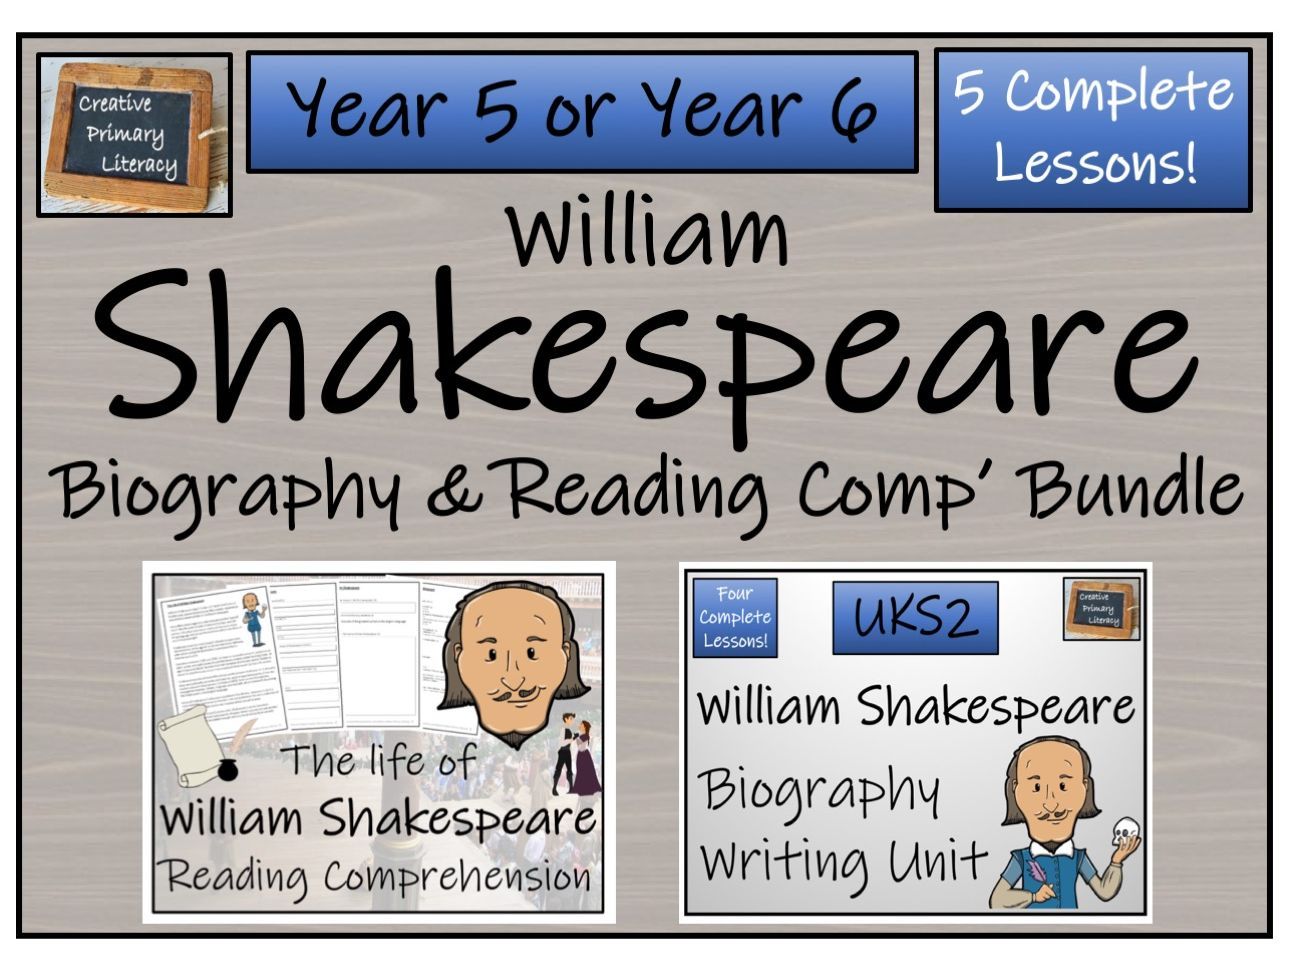 UKS2 History - William Shakespeare Reading Comprehension & Biography Bundle